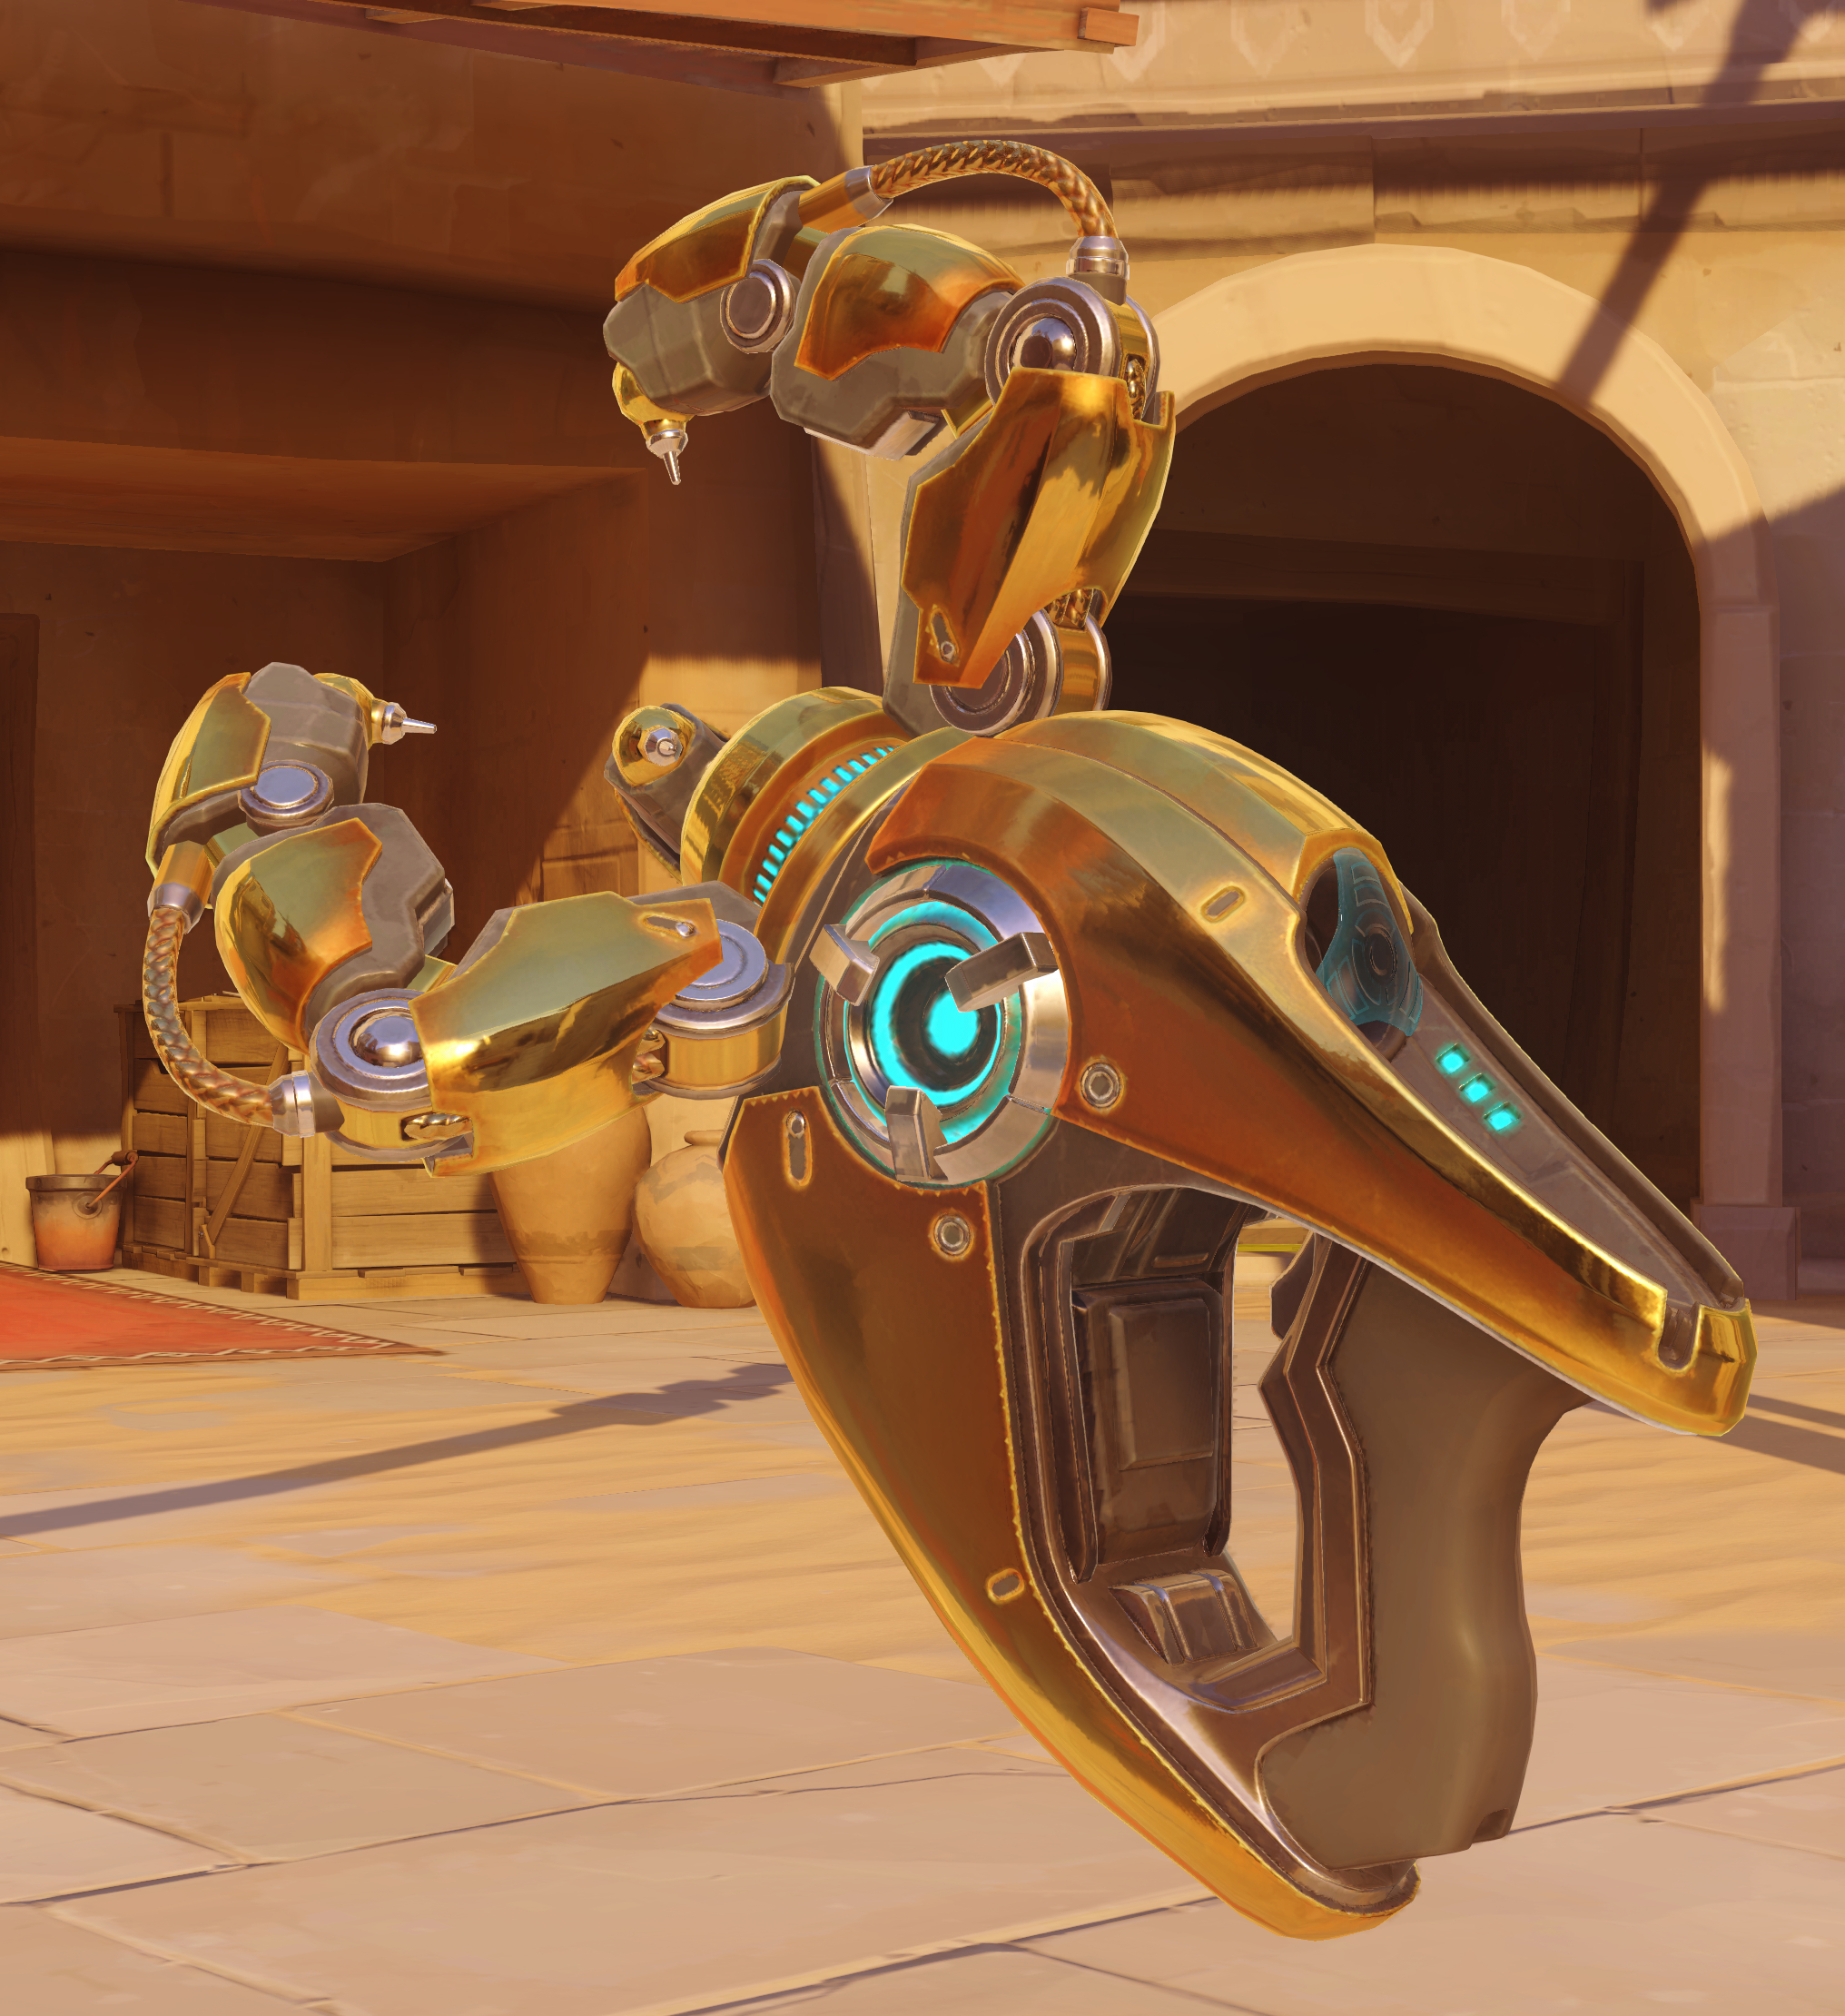 Fichier:Symmetra golden photonprojector.jpg